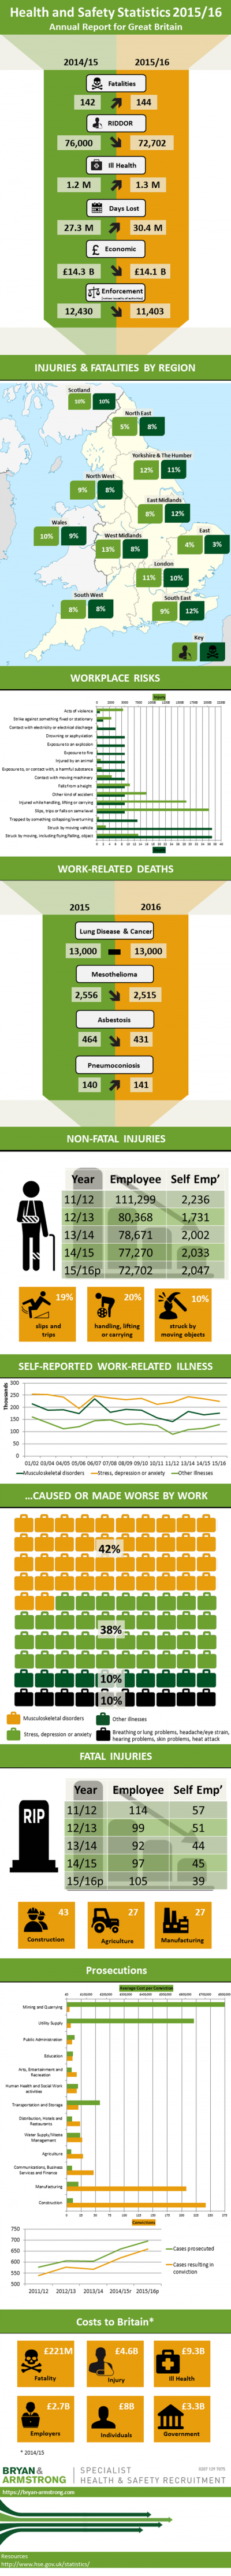 hse-annual-health-and-safety-stats-2015-16